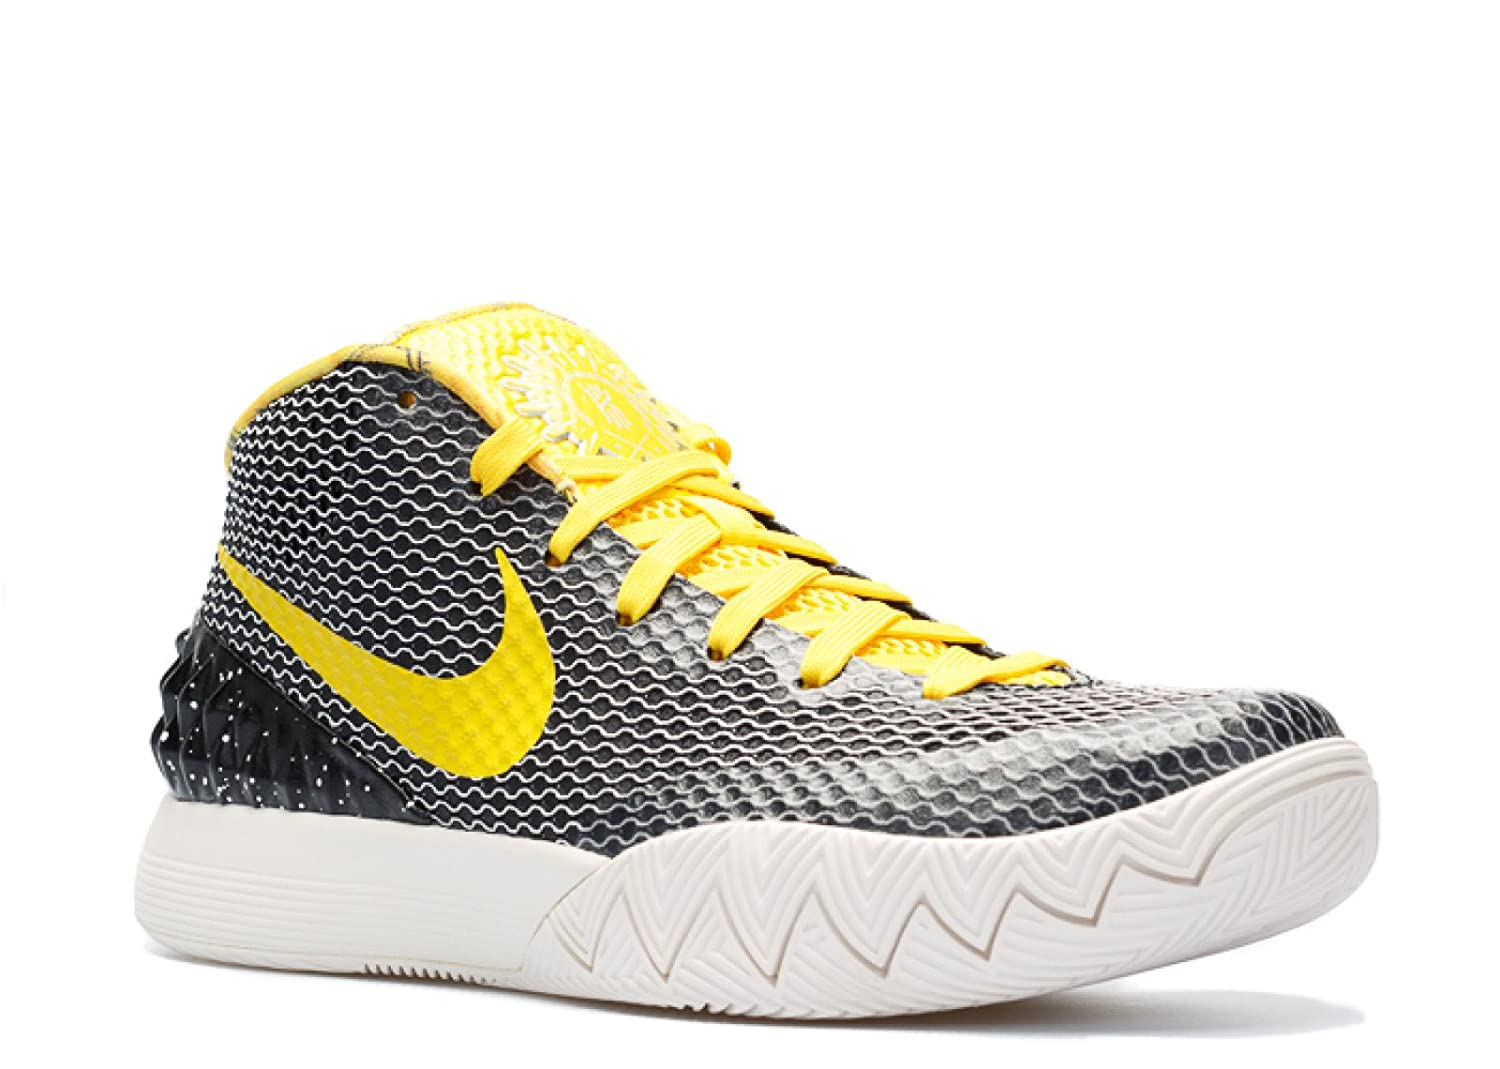 separation shoes 474a2 a6aa1 Nike Kyrie 1 LMTD - 12-812559 071: Amazon.in: Shoes & Handbags